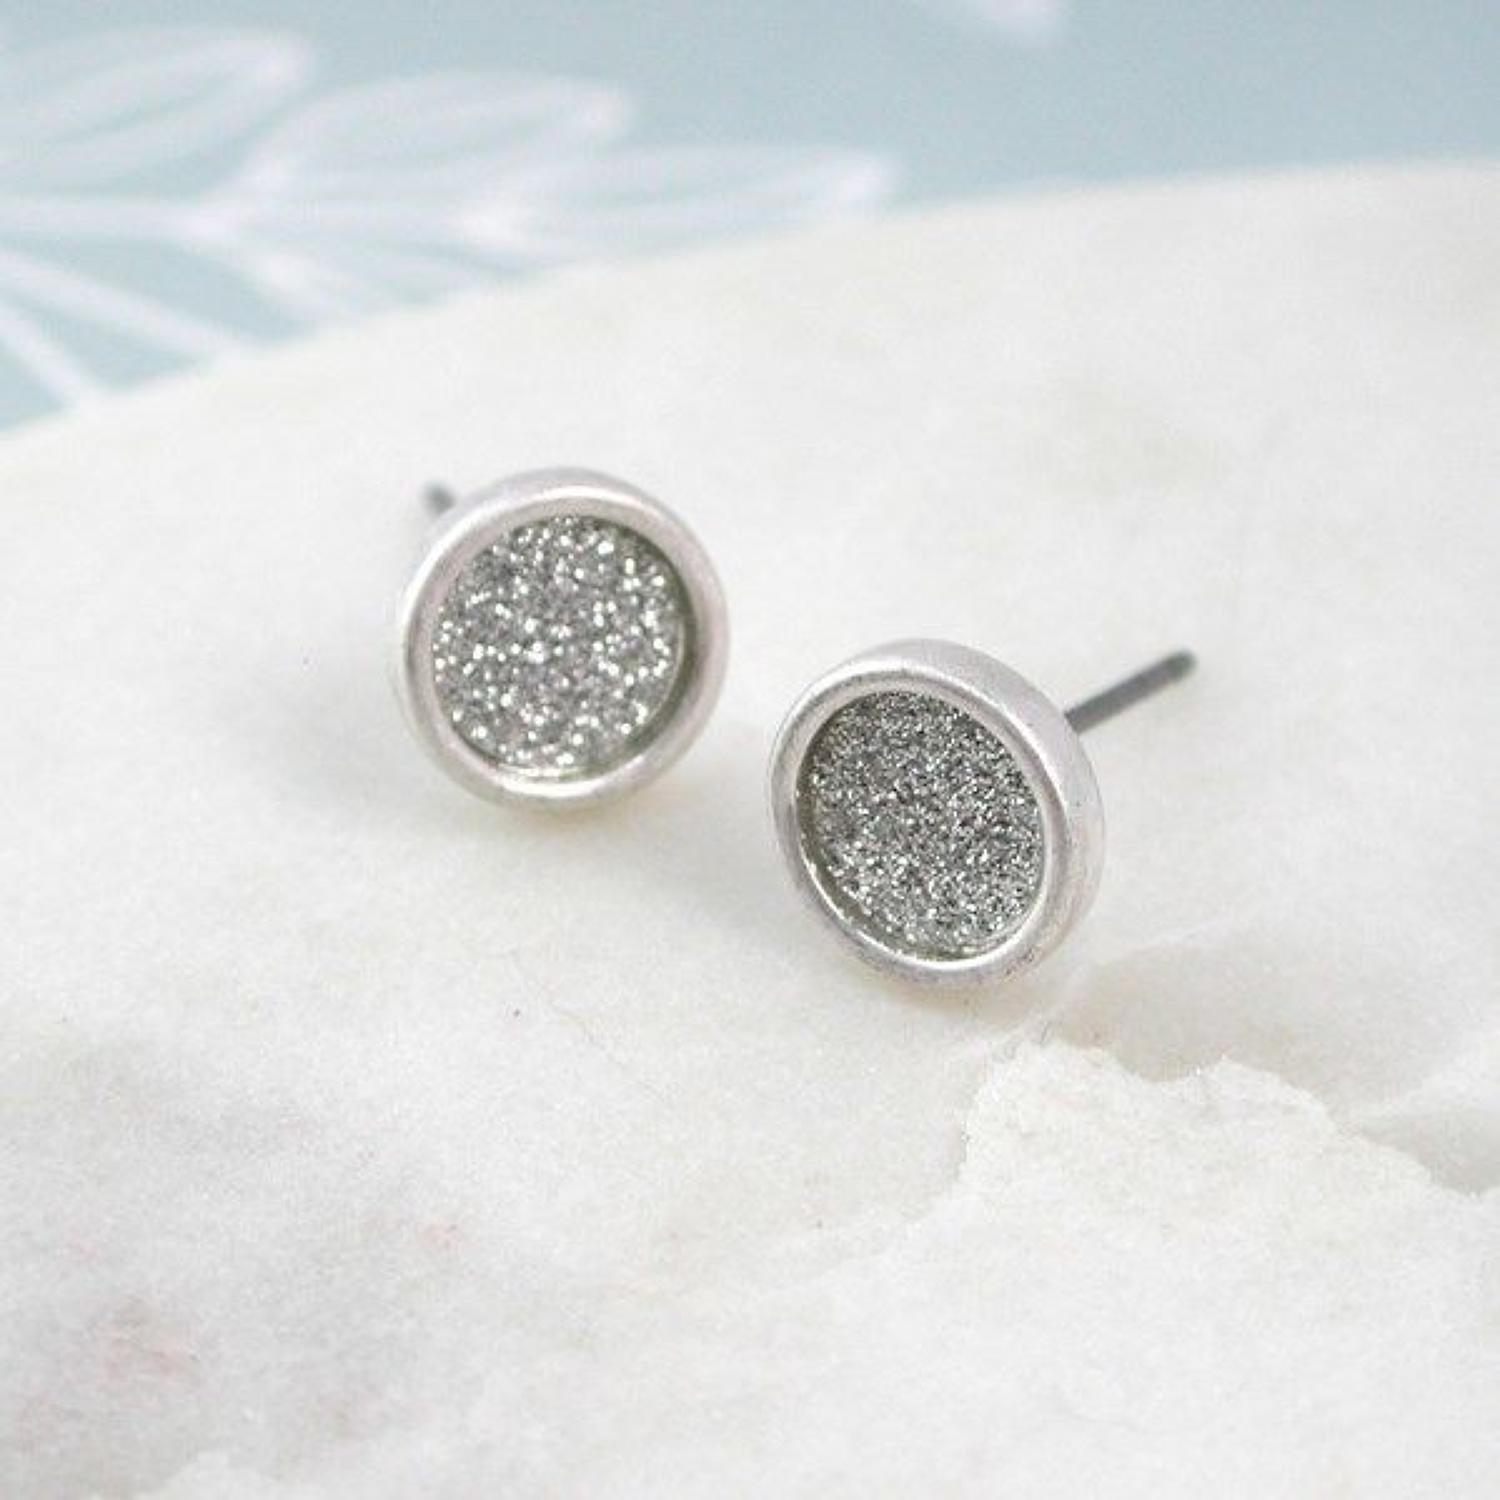 POM - Sparkle disc stud earrings in a worn silver finish